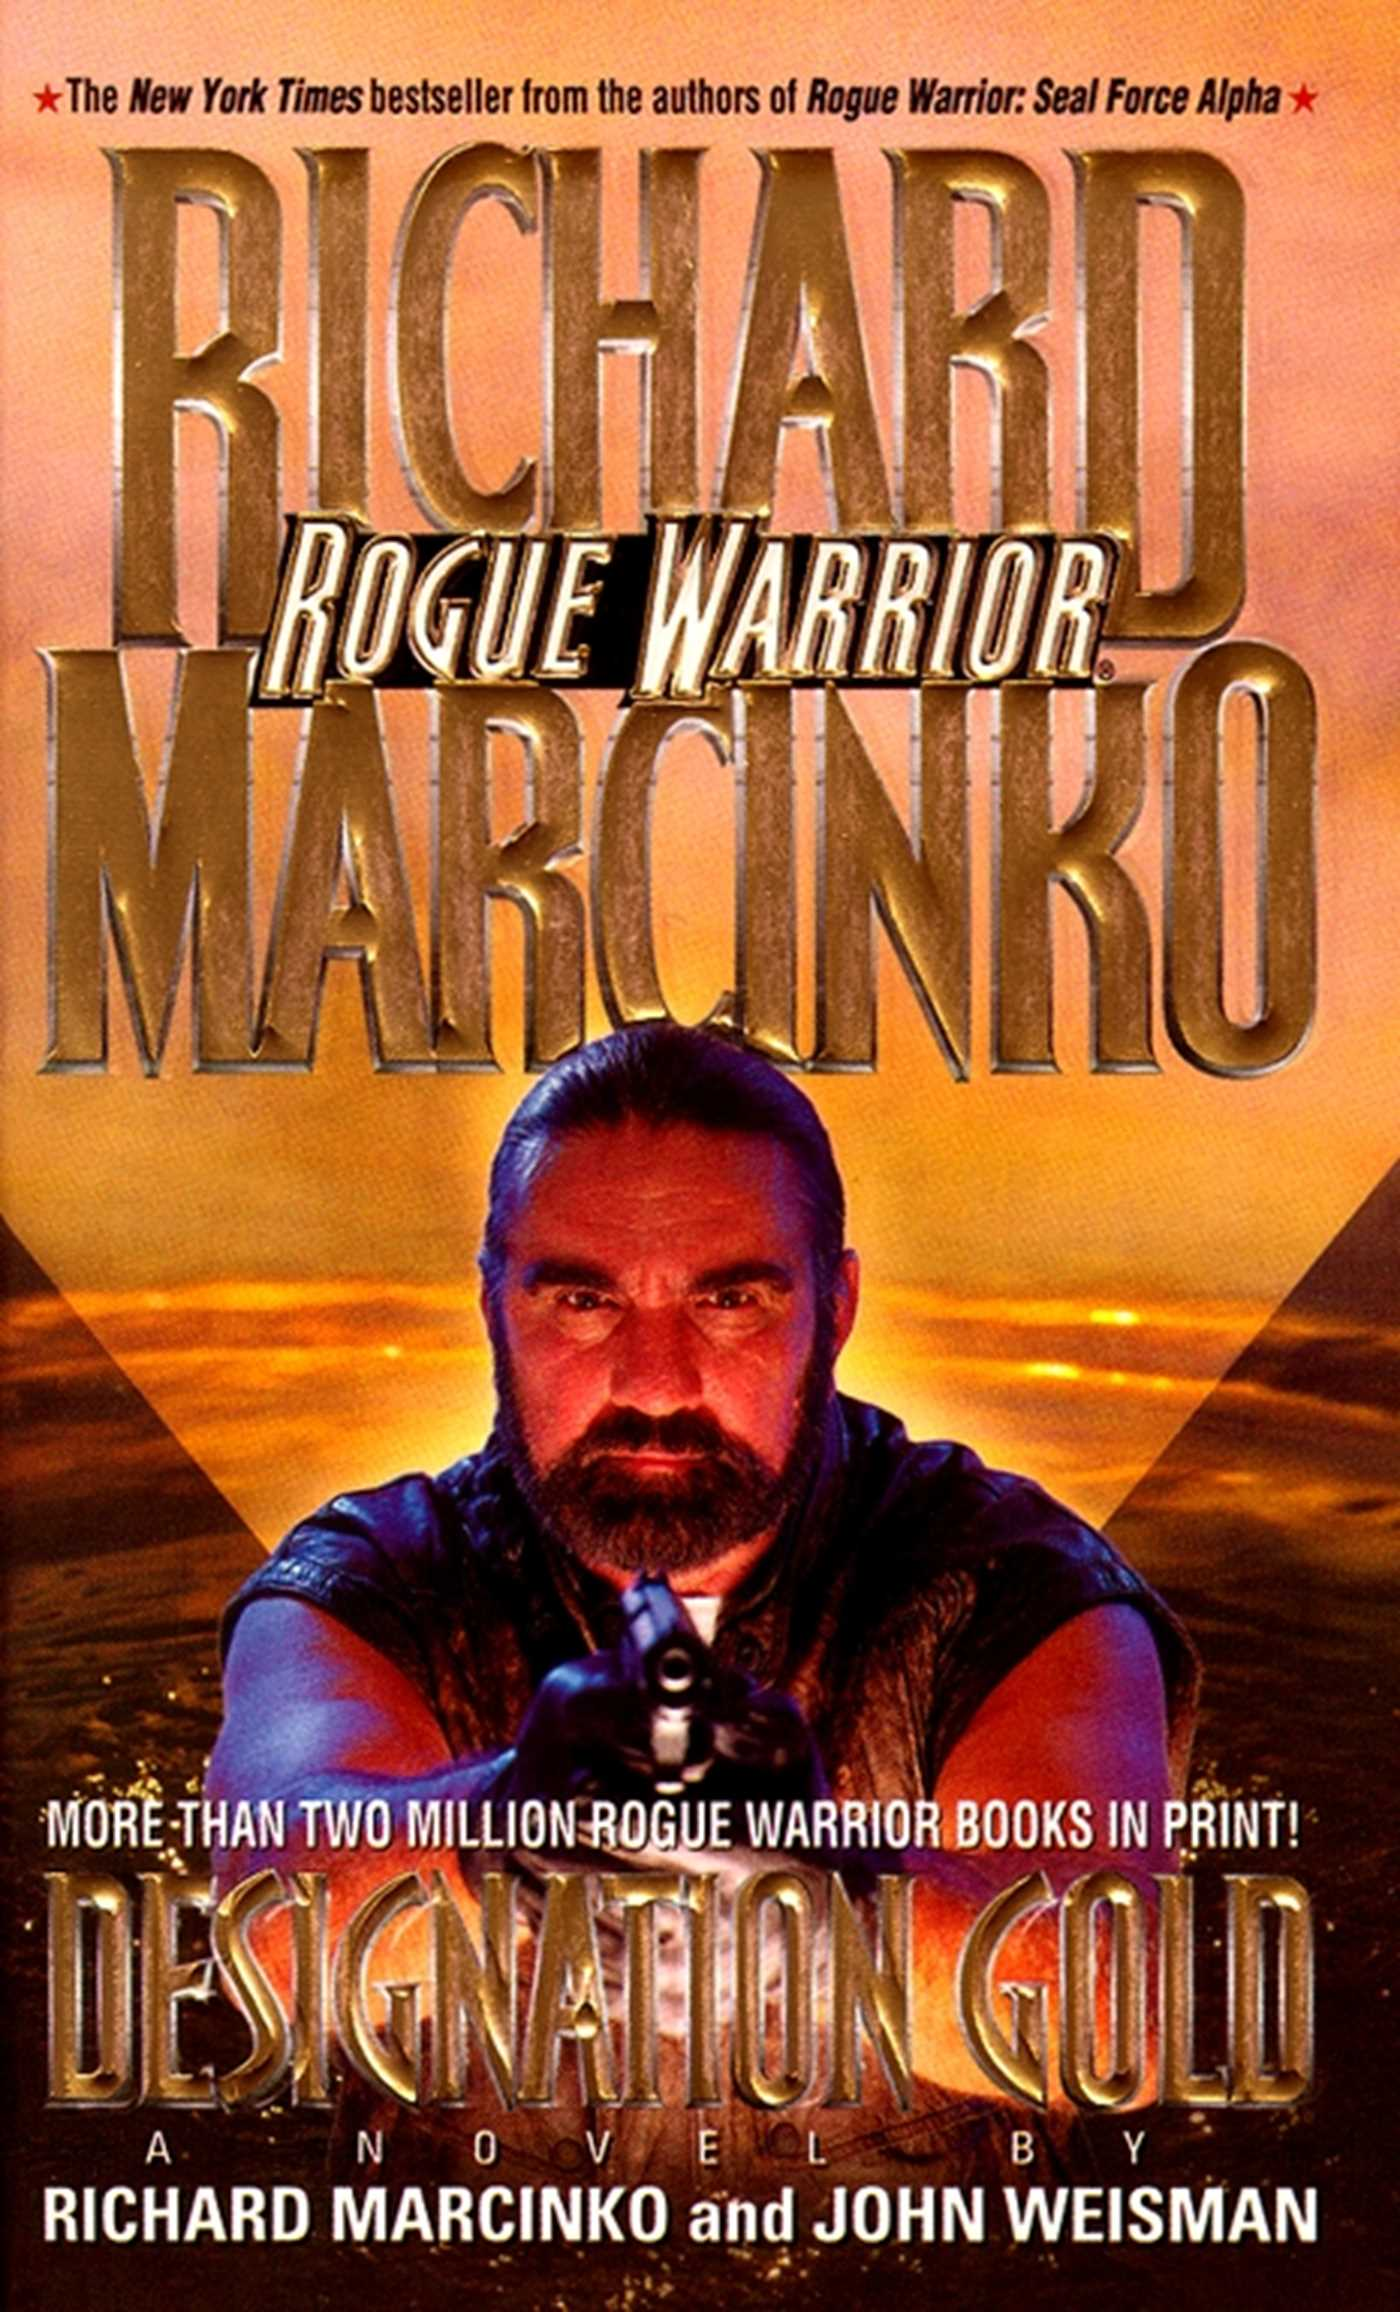 designation gold rogue warrior marcinko richard